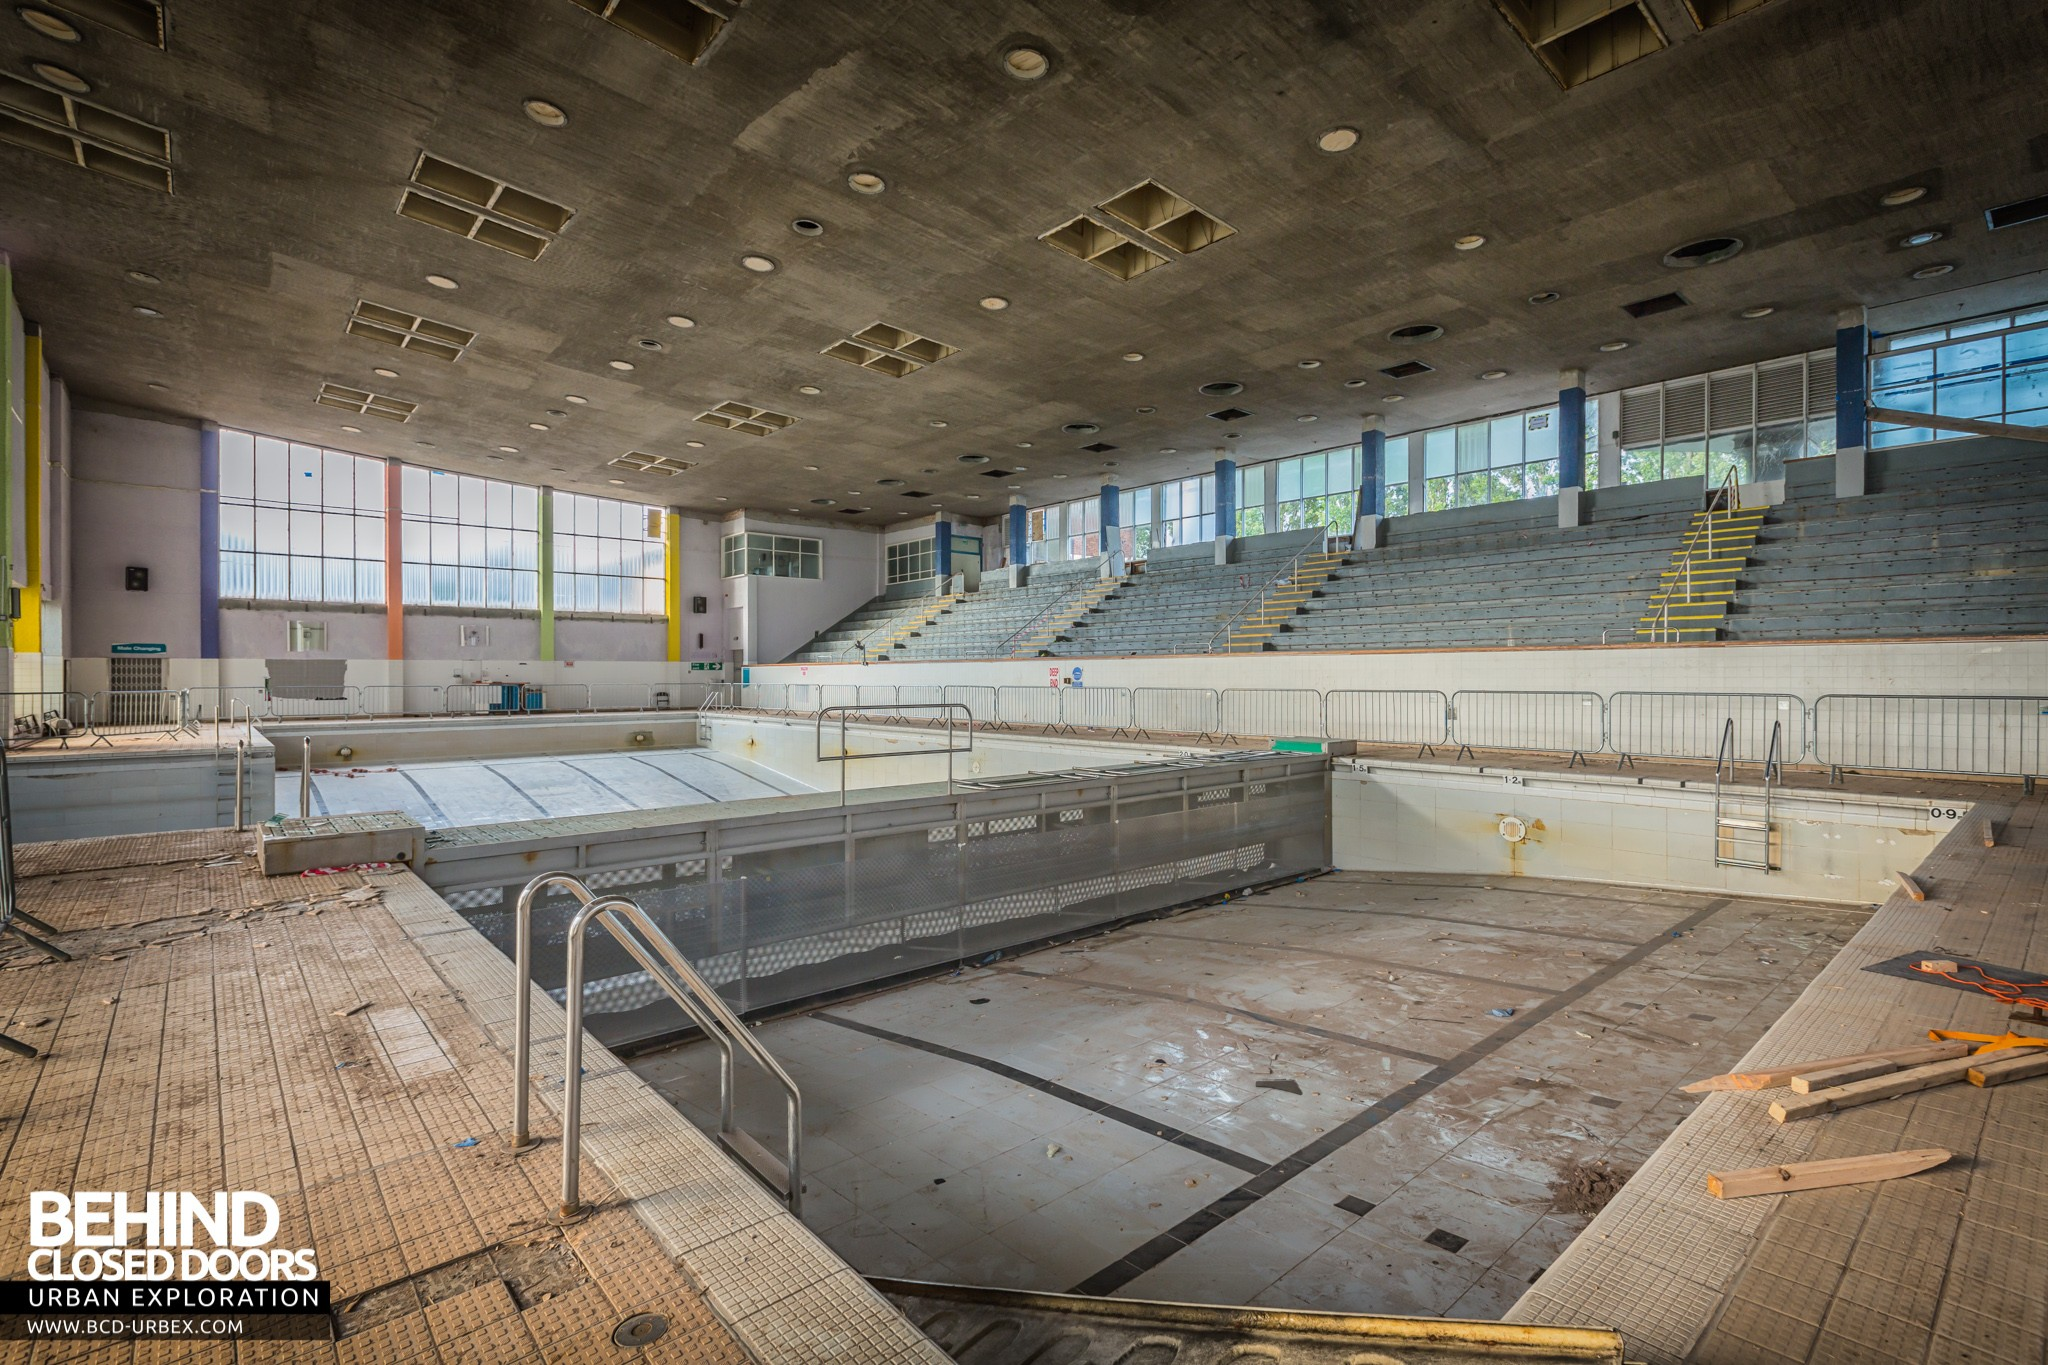 Scartho Baths Swimming Pool Grimsby 187 Urbex Behind